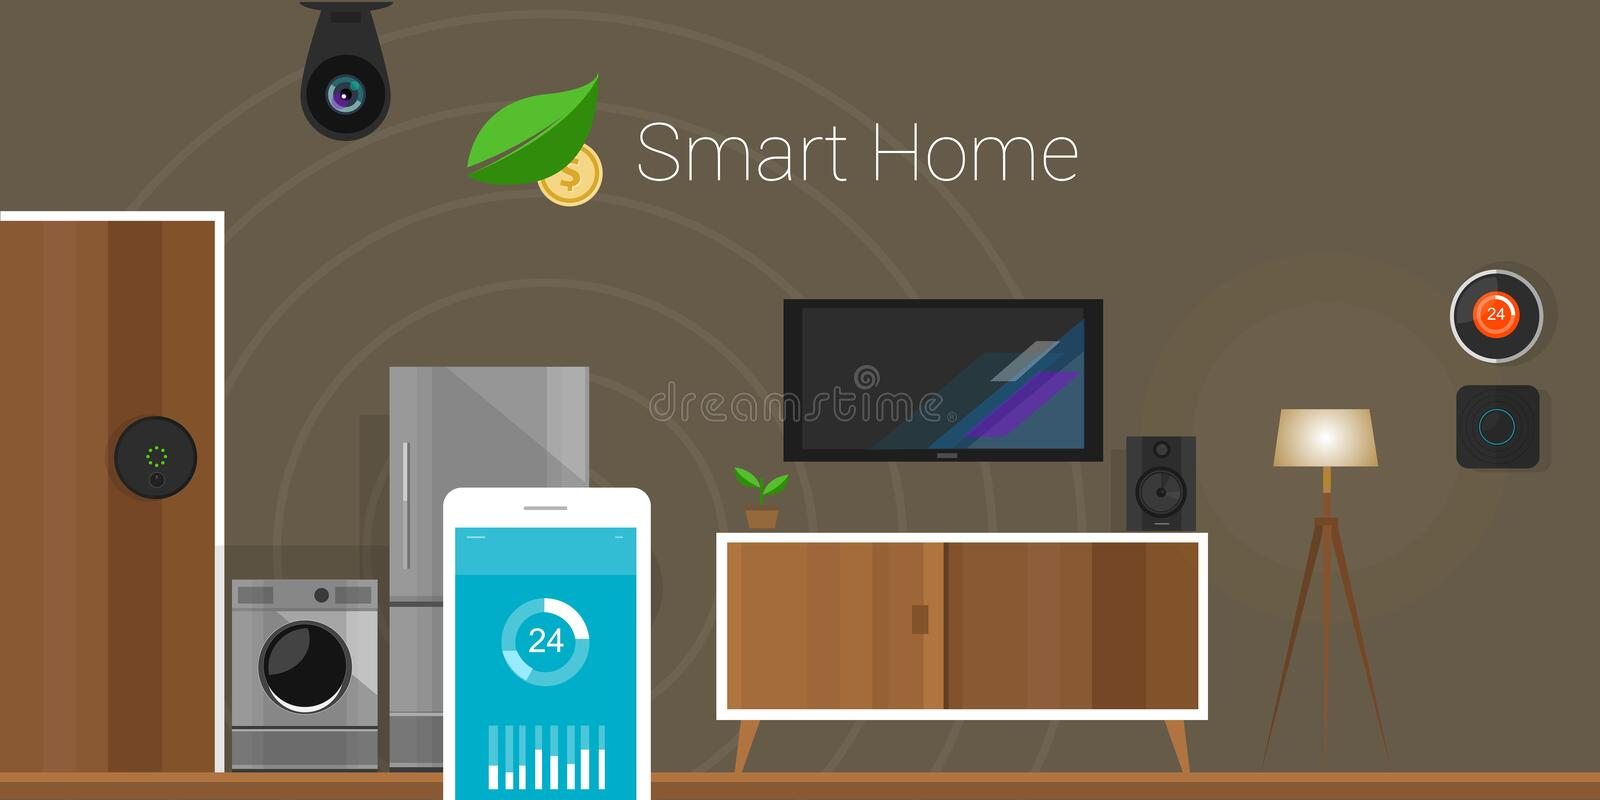 Smart Home Internet of Things. Smart Home that show how internet of thing can connecting devices in house, items such as lamp, temperature, door lock, fire alarm vector illustration